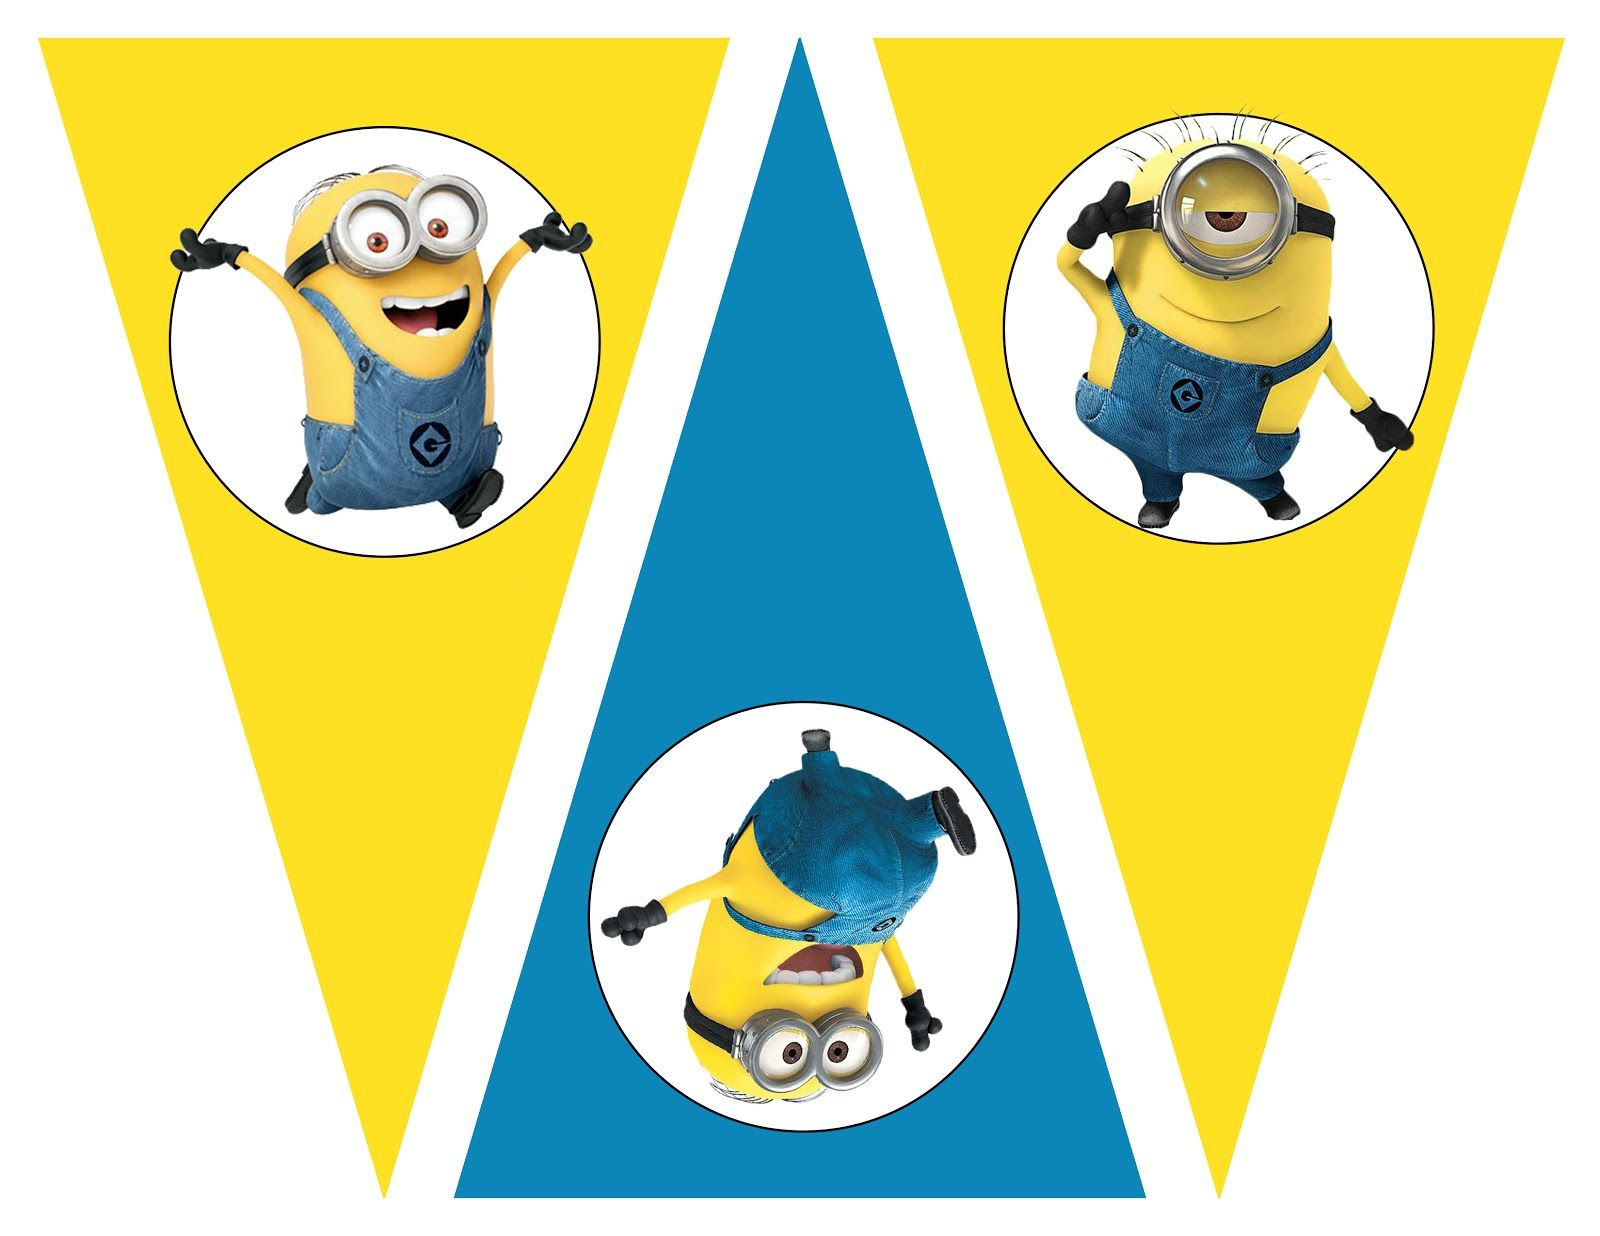 picture regarding Minions Printable Invitations named Cost-free Despicable me social gathering printables, birthday social gathering topic